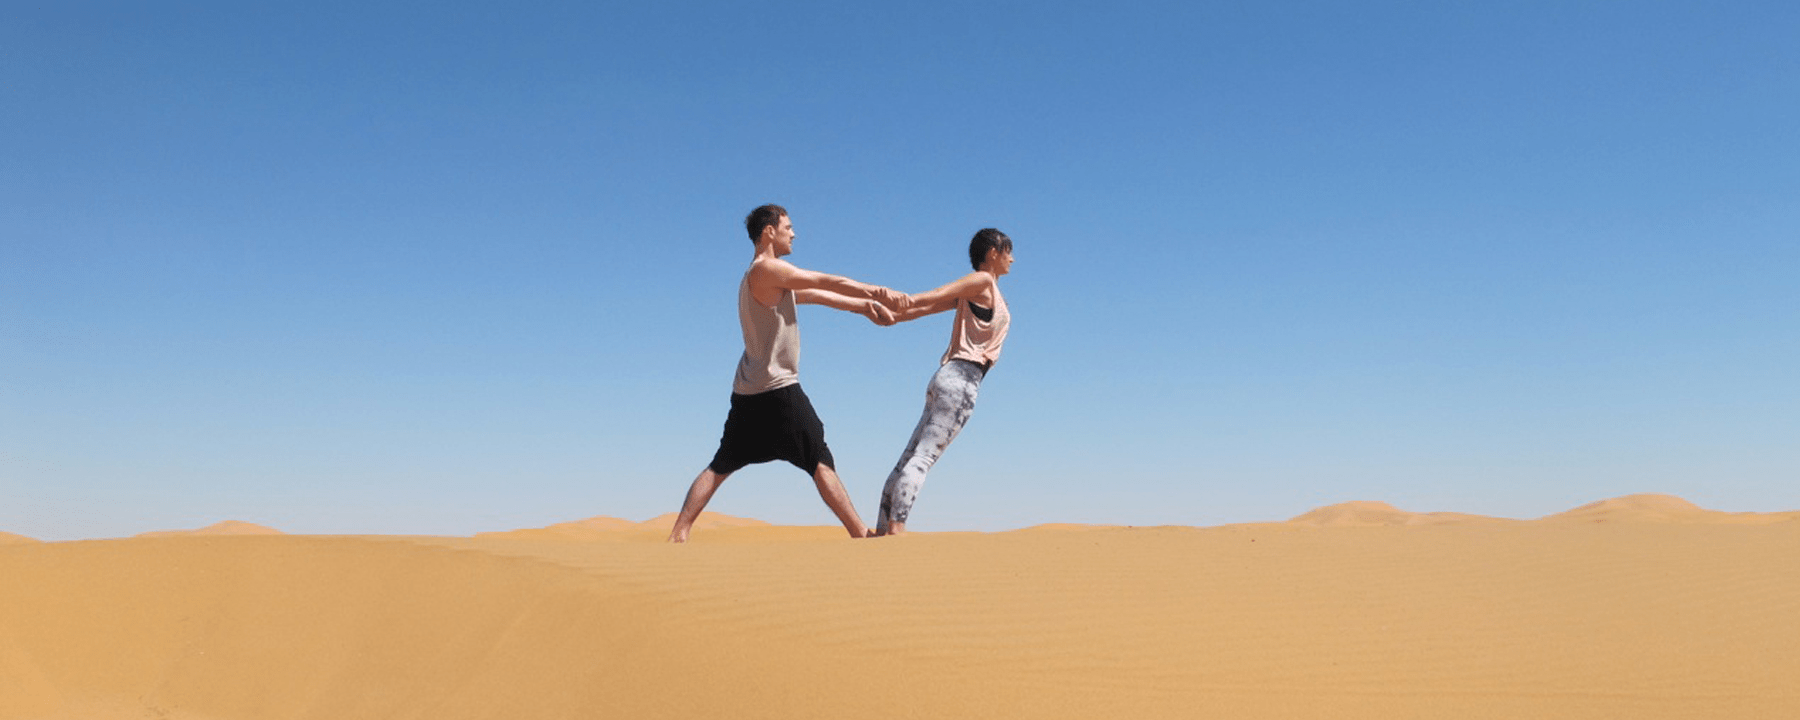 Yoga skillful movement Yoga Retreats Sahara Desert Morocco_Source NOSADE